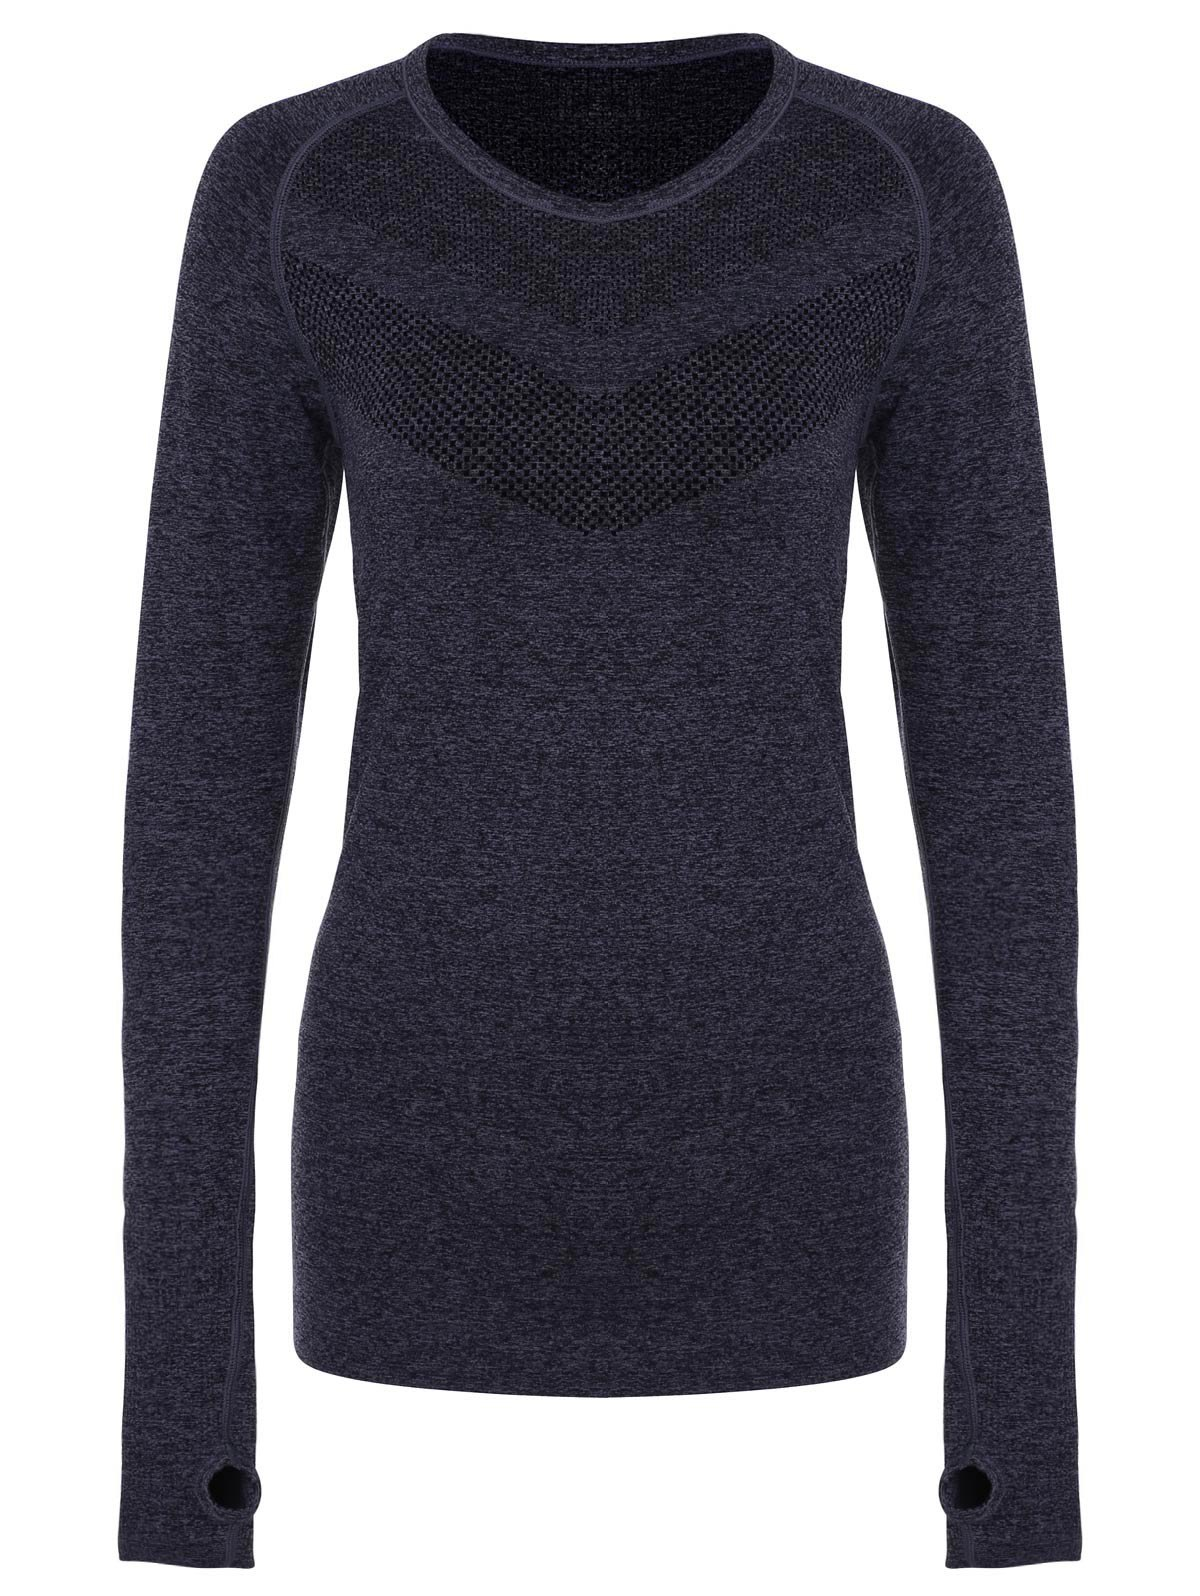 Round Collar Slimming Long Sleeve Gym Top For Women